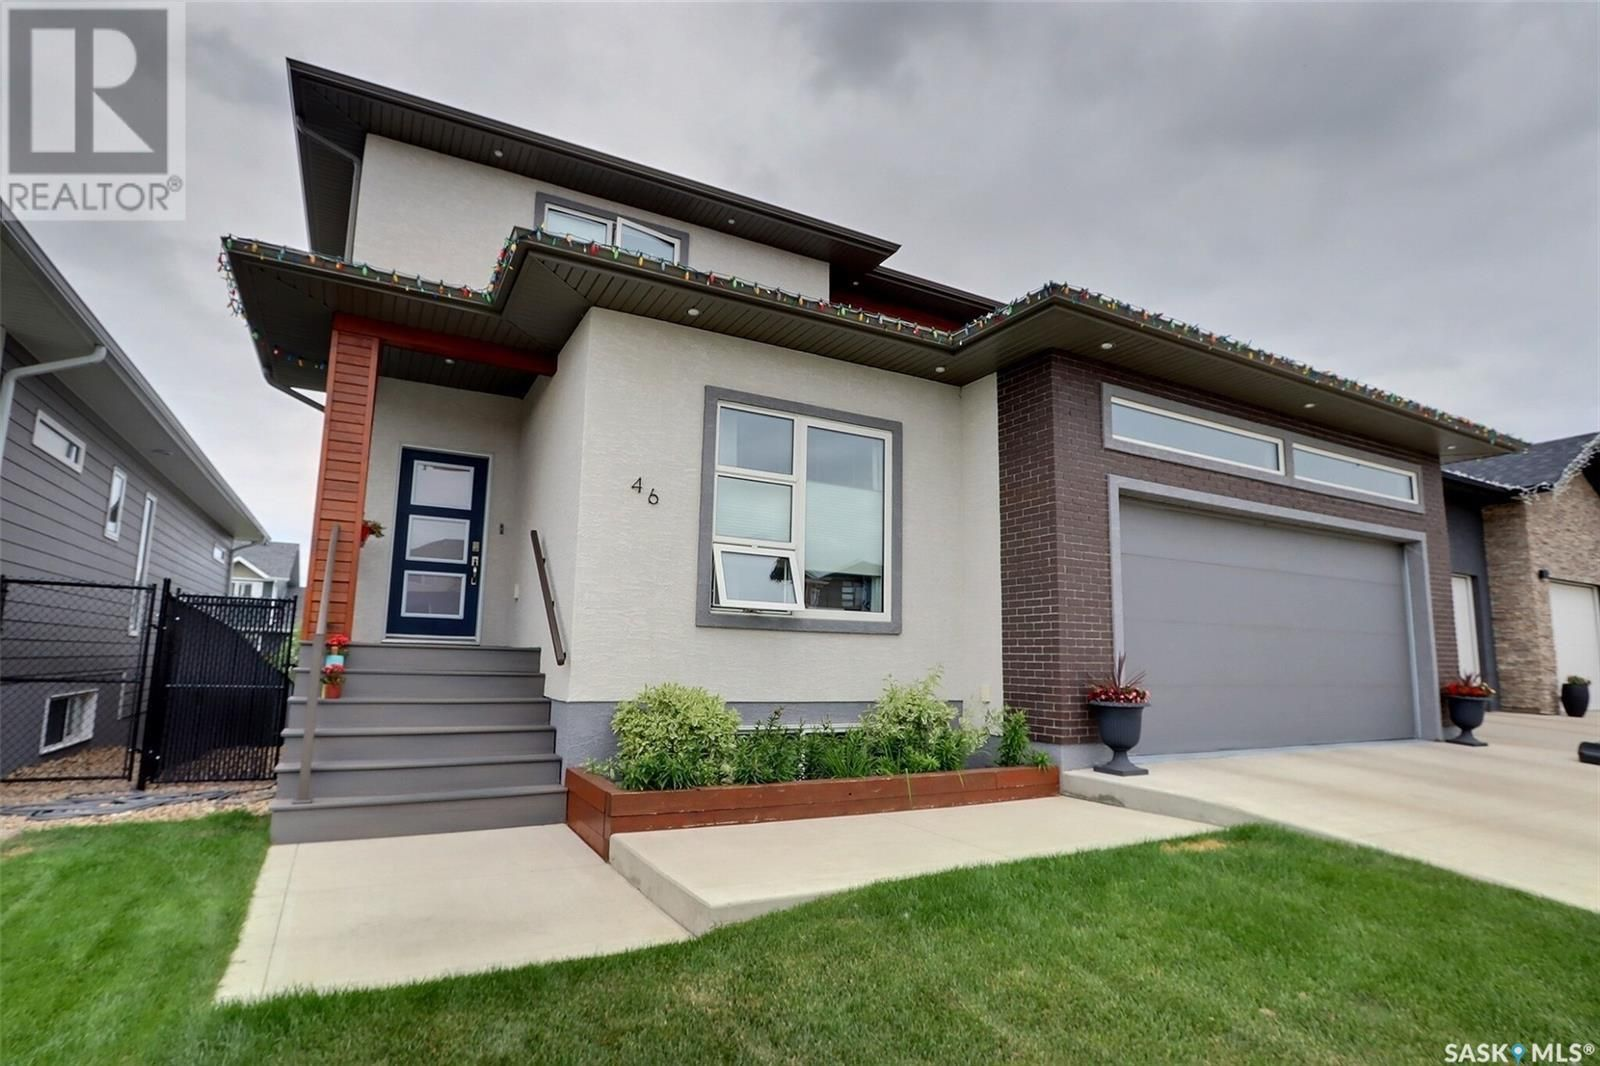 Main Photo: 46 Hinz PL in Prince Albert: House for sale : MLS®# SK867436